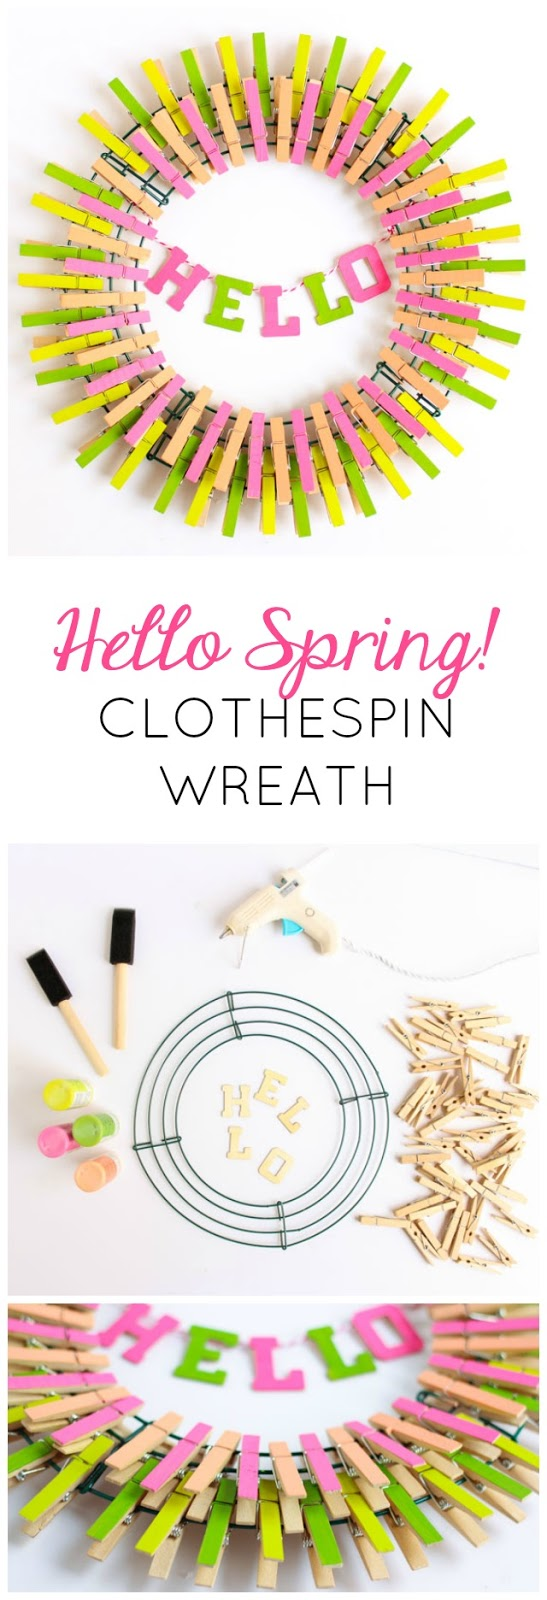 Hello Spring! This colorful DIY clothespin wreath is the perfect way to welcome spring to your home. #springwreath #clothespinwreath #clothespin #hellospring